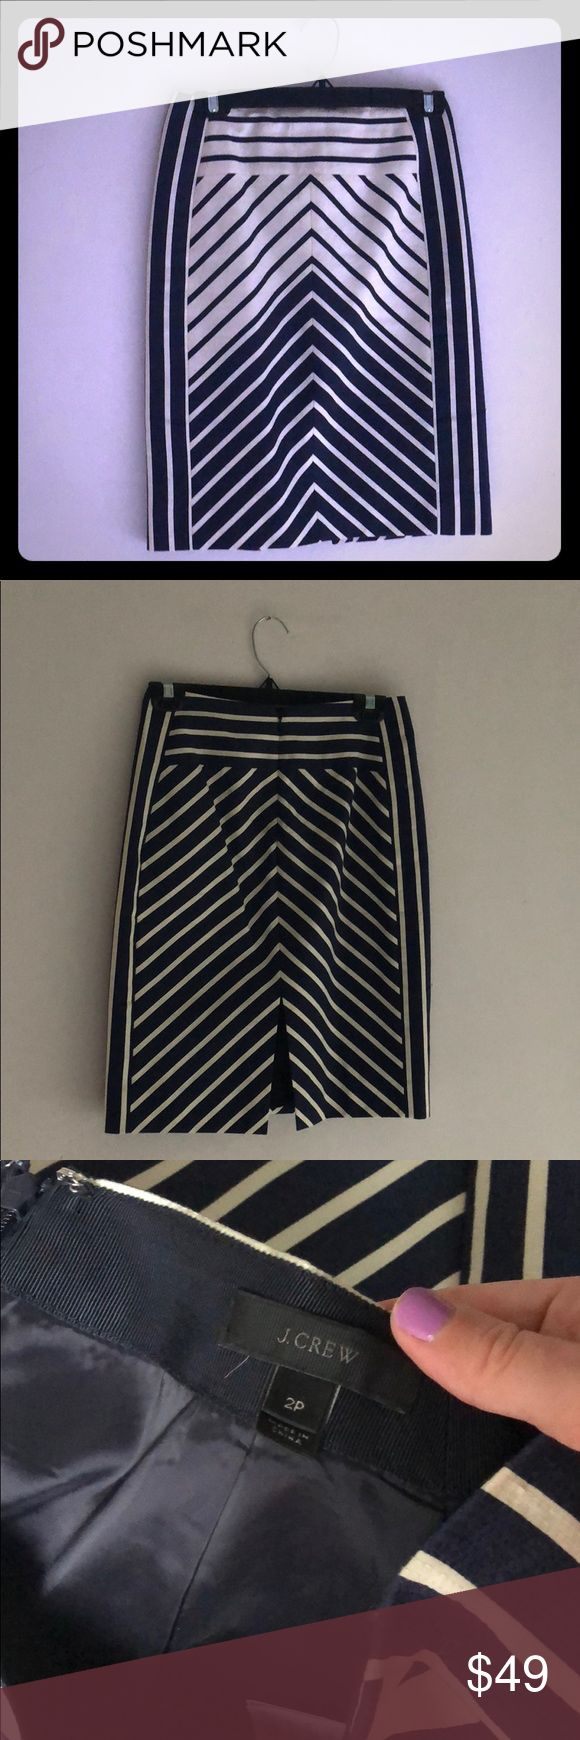 Price drop!! J Crew Navy Stripe Skirt size 2P Worn once and in perfect condition. Size 2p jcrew Skirts Pencil